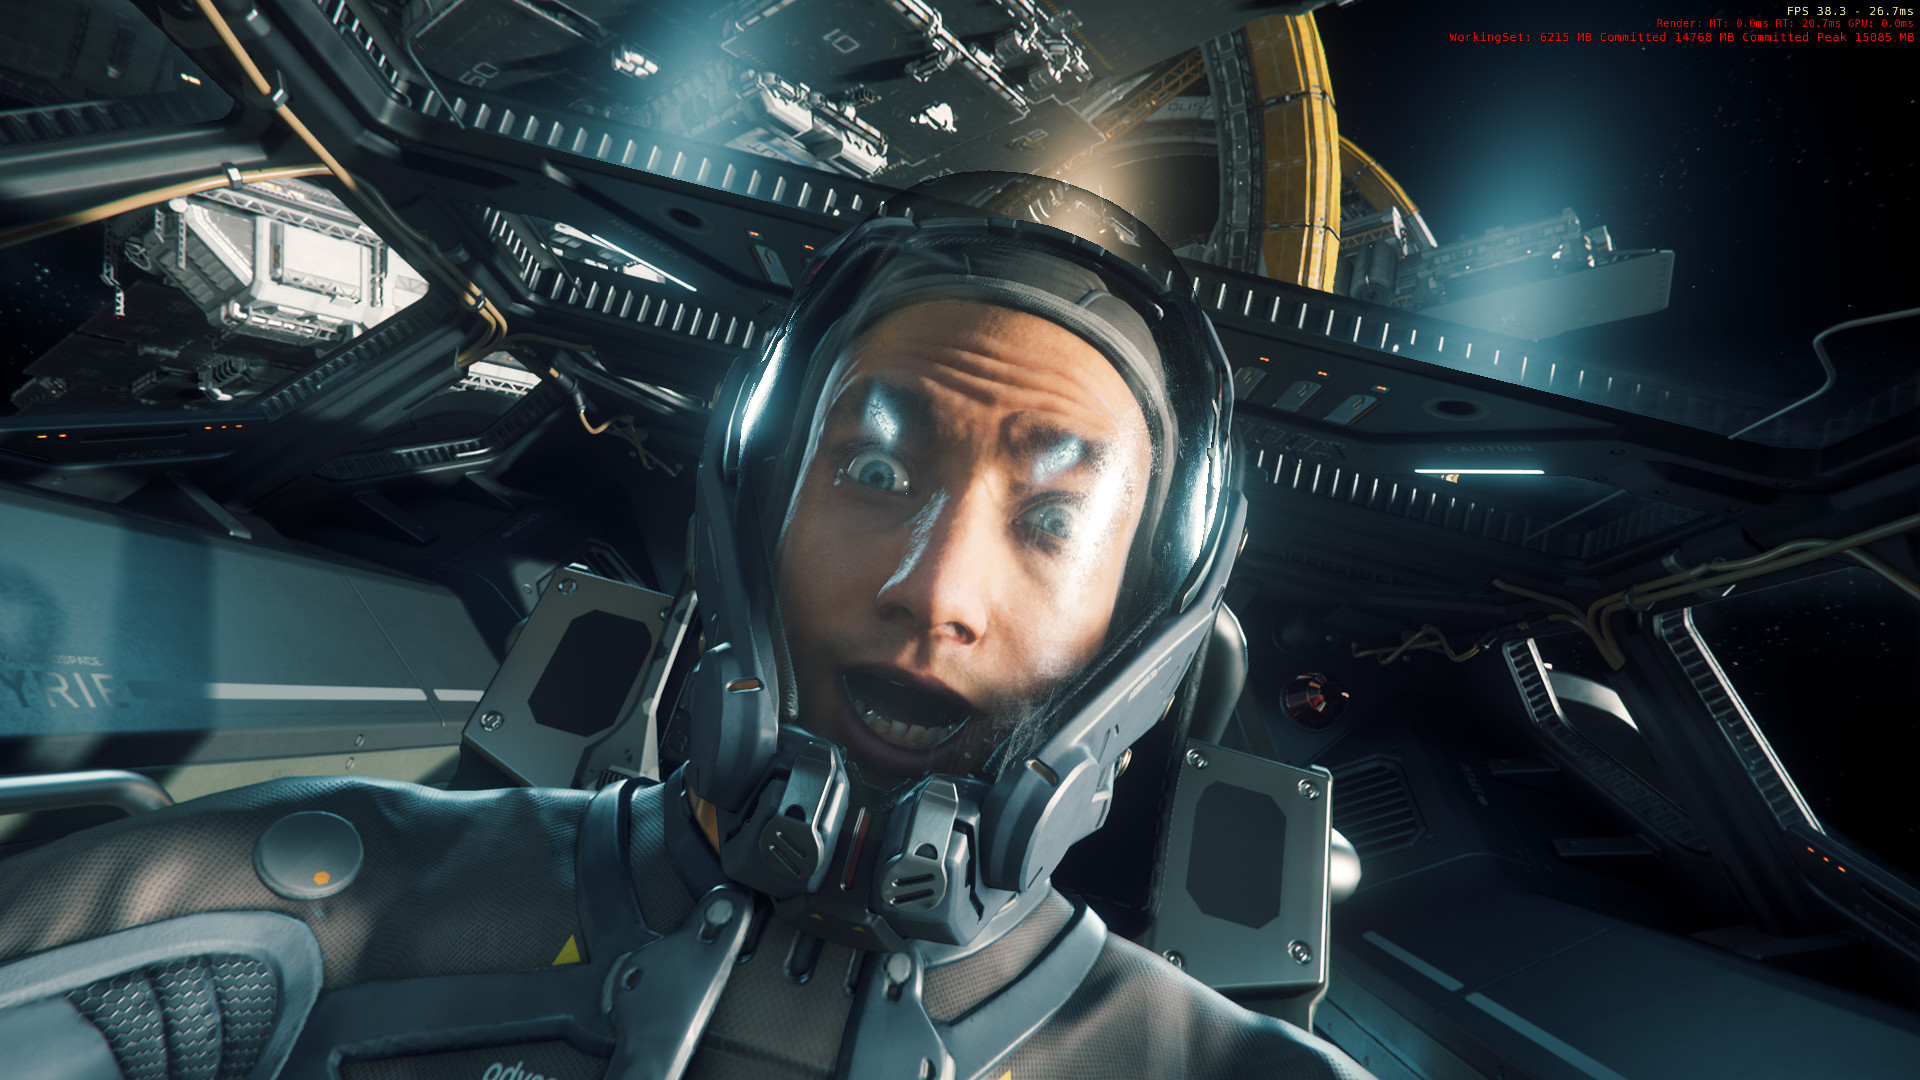 Star Citizen - media blowout, Chris Robert's new game | Page 436